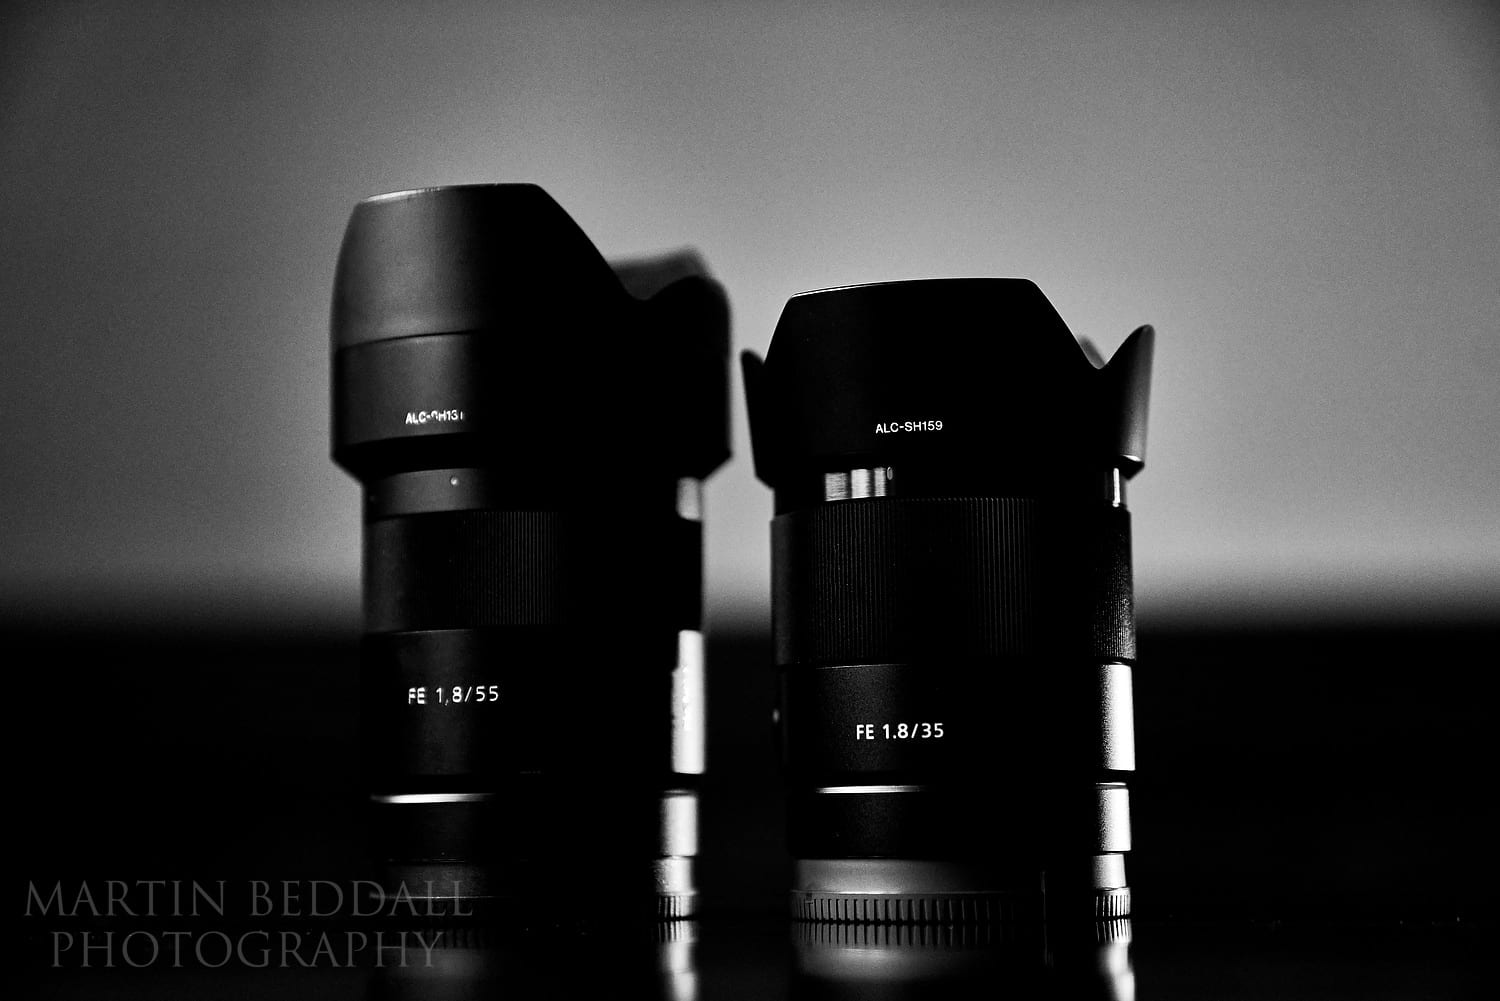 Sony 55mm and 35mm lenses